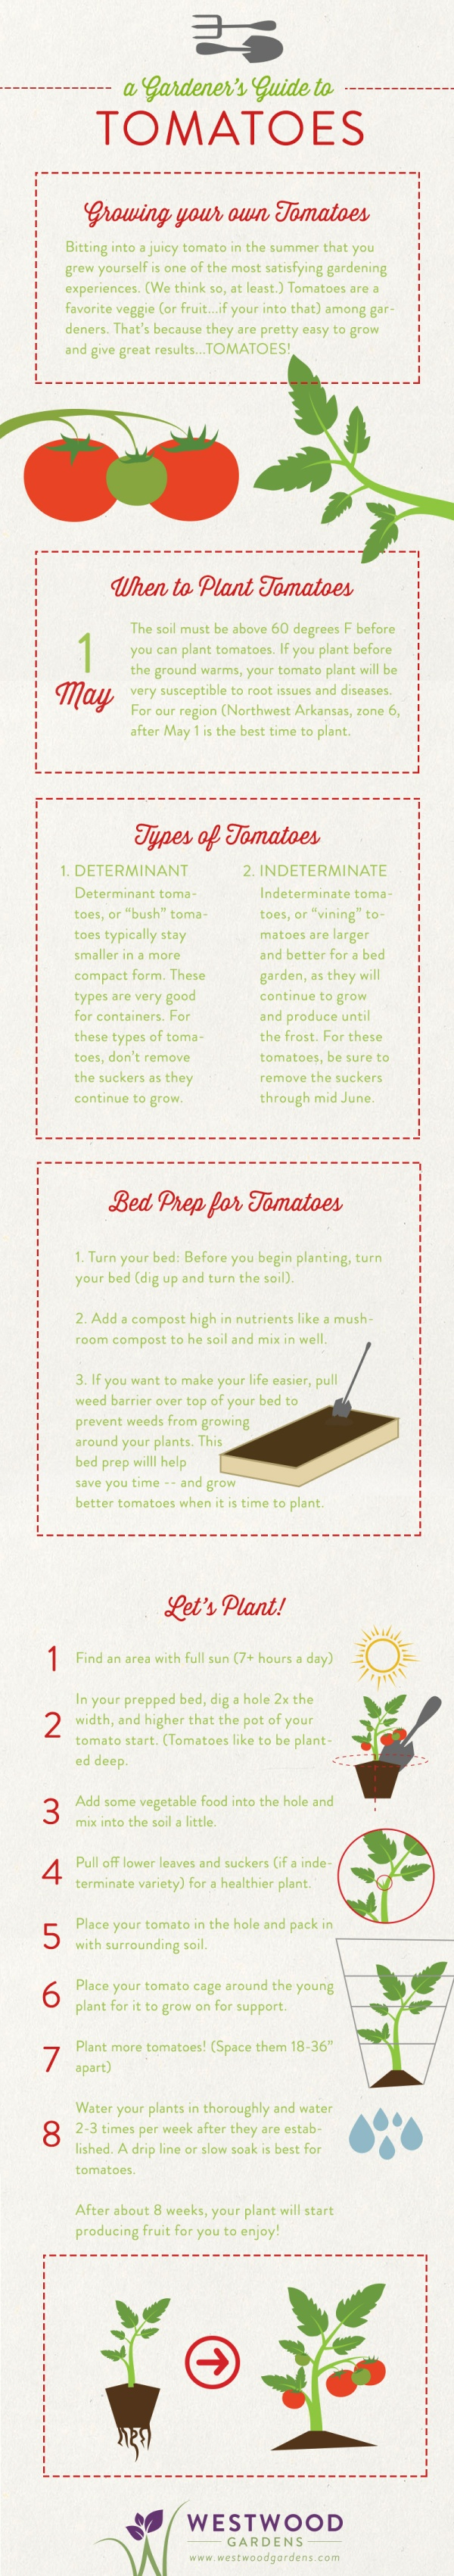 Tomatoes-Guide